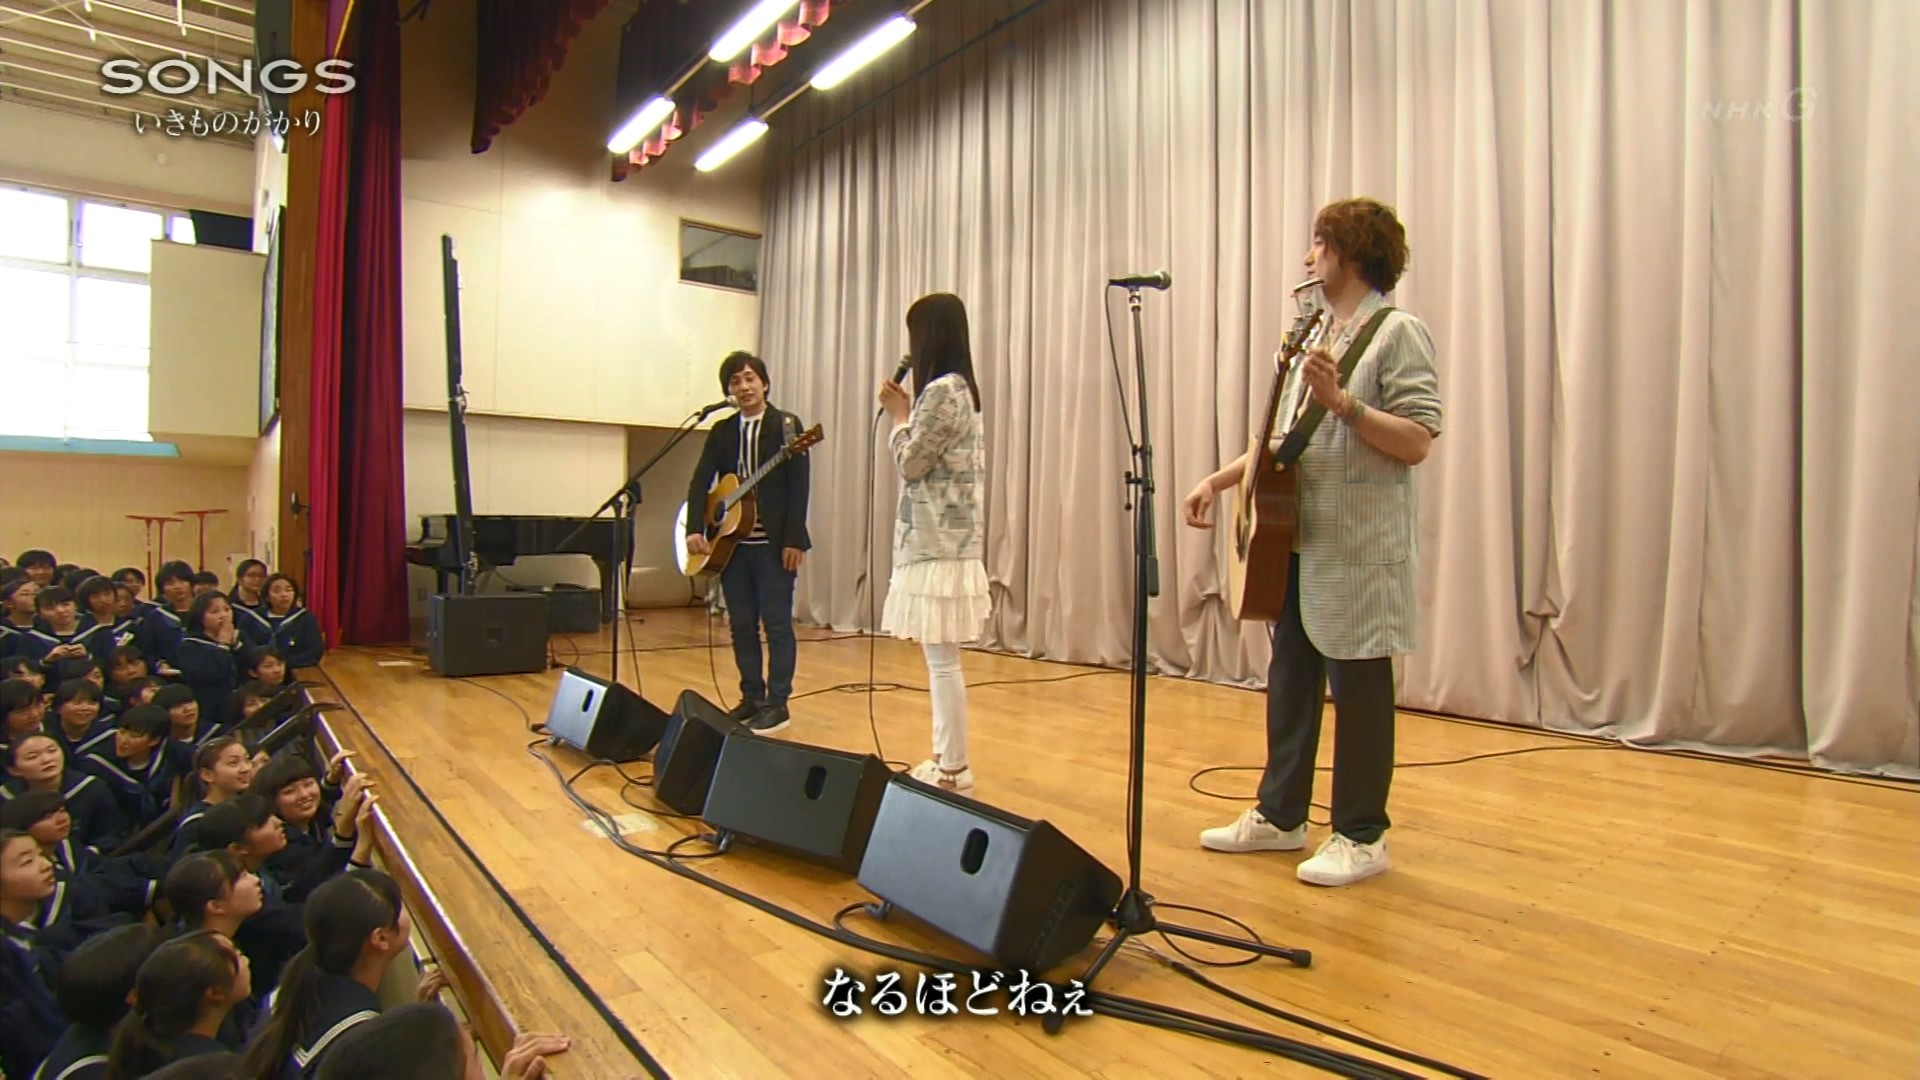 2016.04.28 全場(SONGS).ts_20160428_225841.840